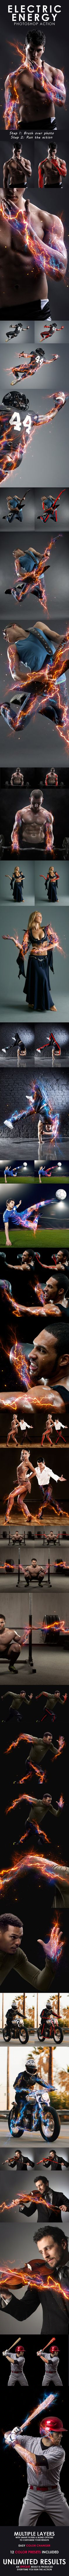 Electric Energy Photoshop Action. Download here: http://graphicriver.net/item/electric-energy-photoshop-action/16607820?ref=ksioks